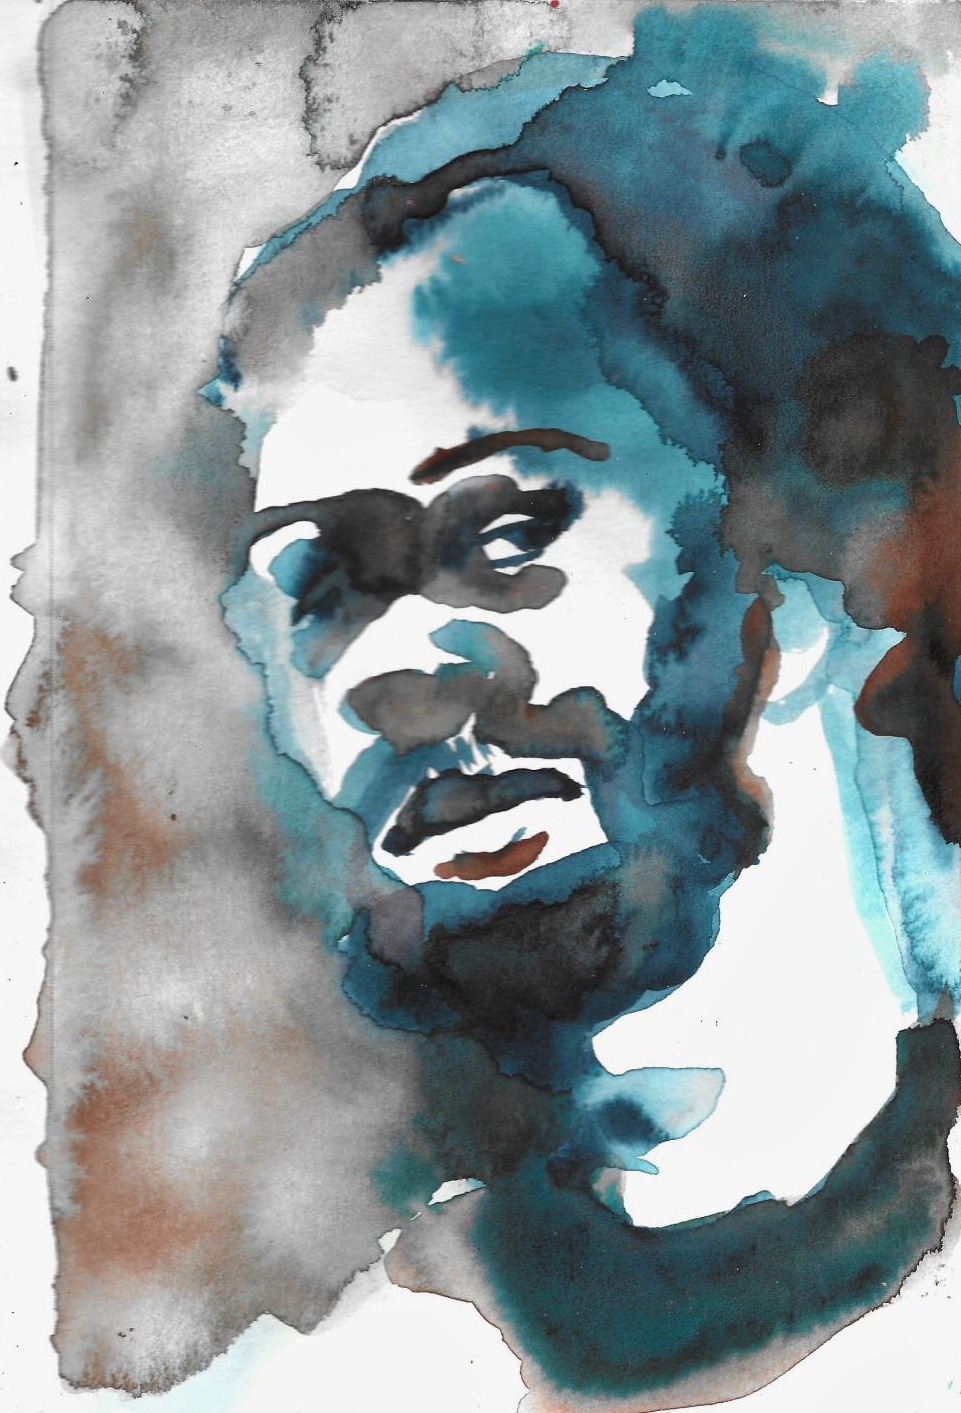 Watercolor Study of Man with Beard